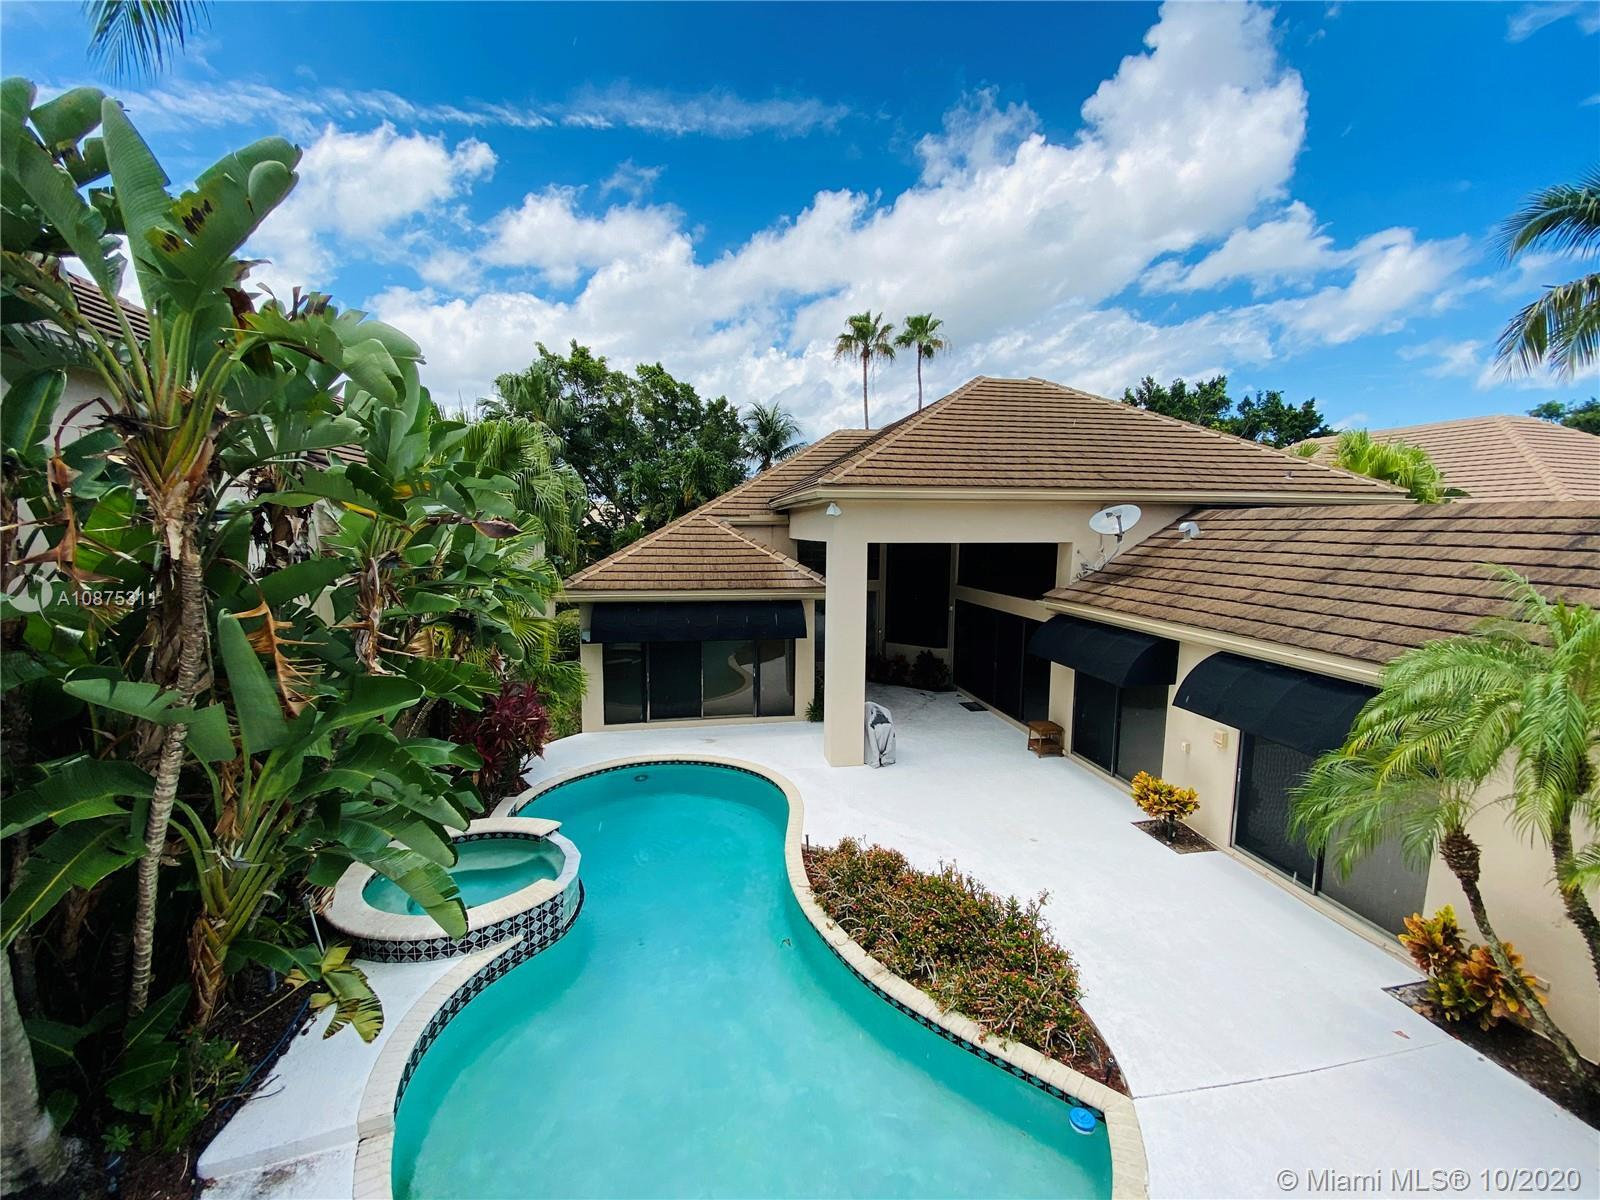 $60K price reduction. Priced for Sale. Broken Sound Country Club. Courtyard home with 2 guest suites